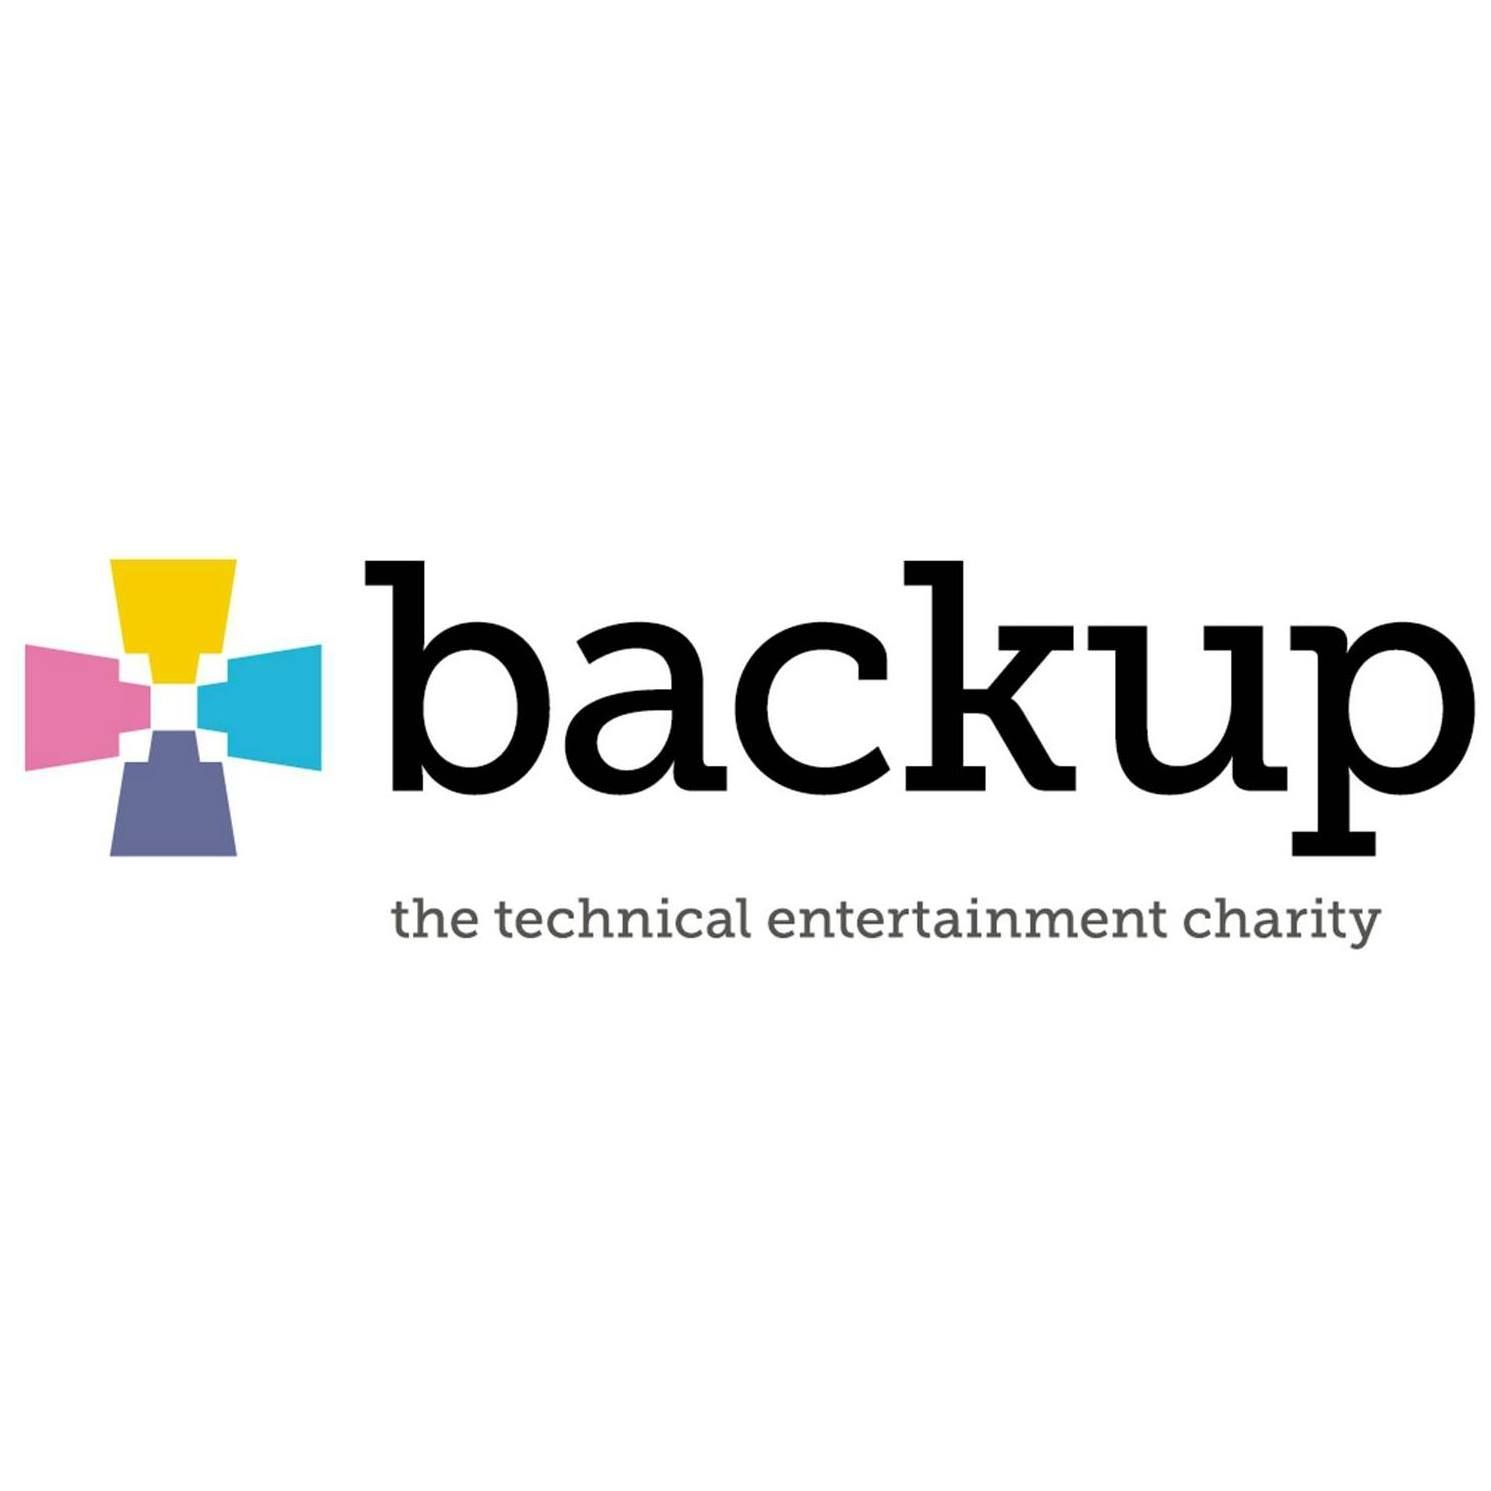 Backup - The Technical Entertainment Charity